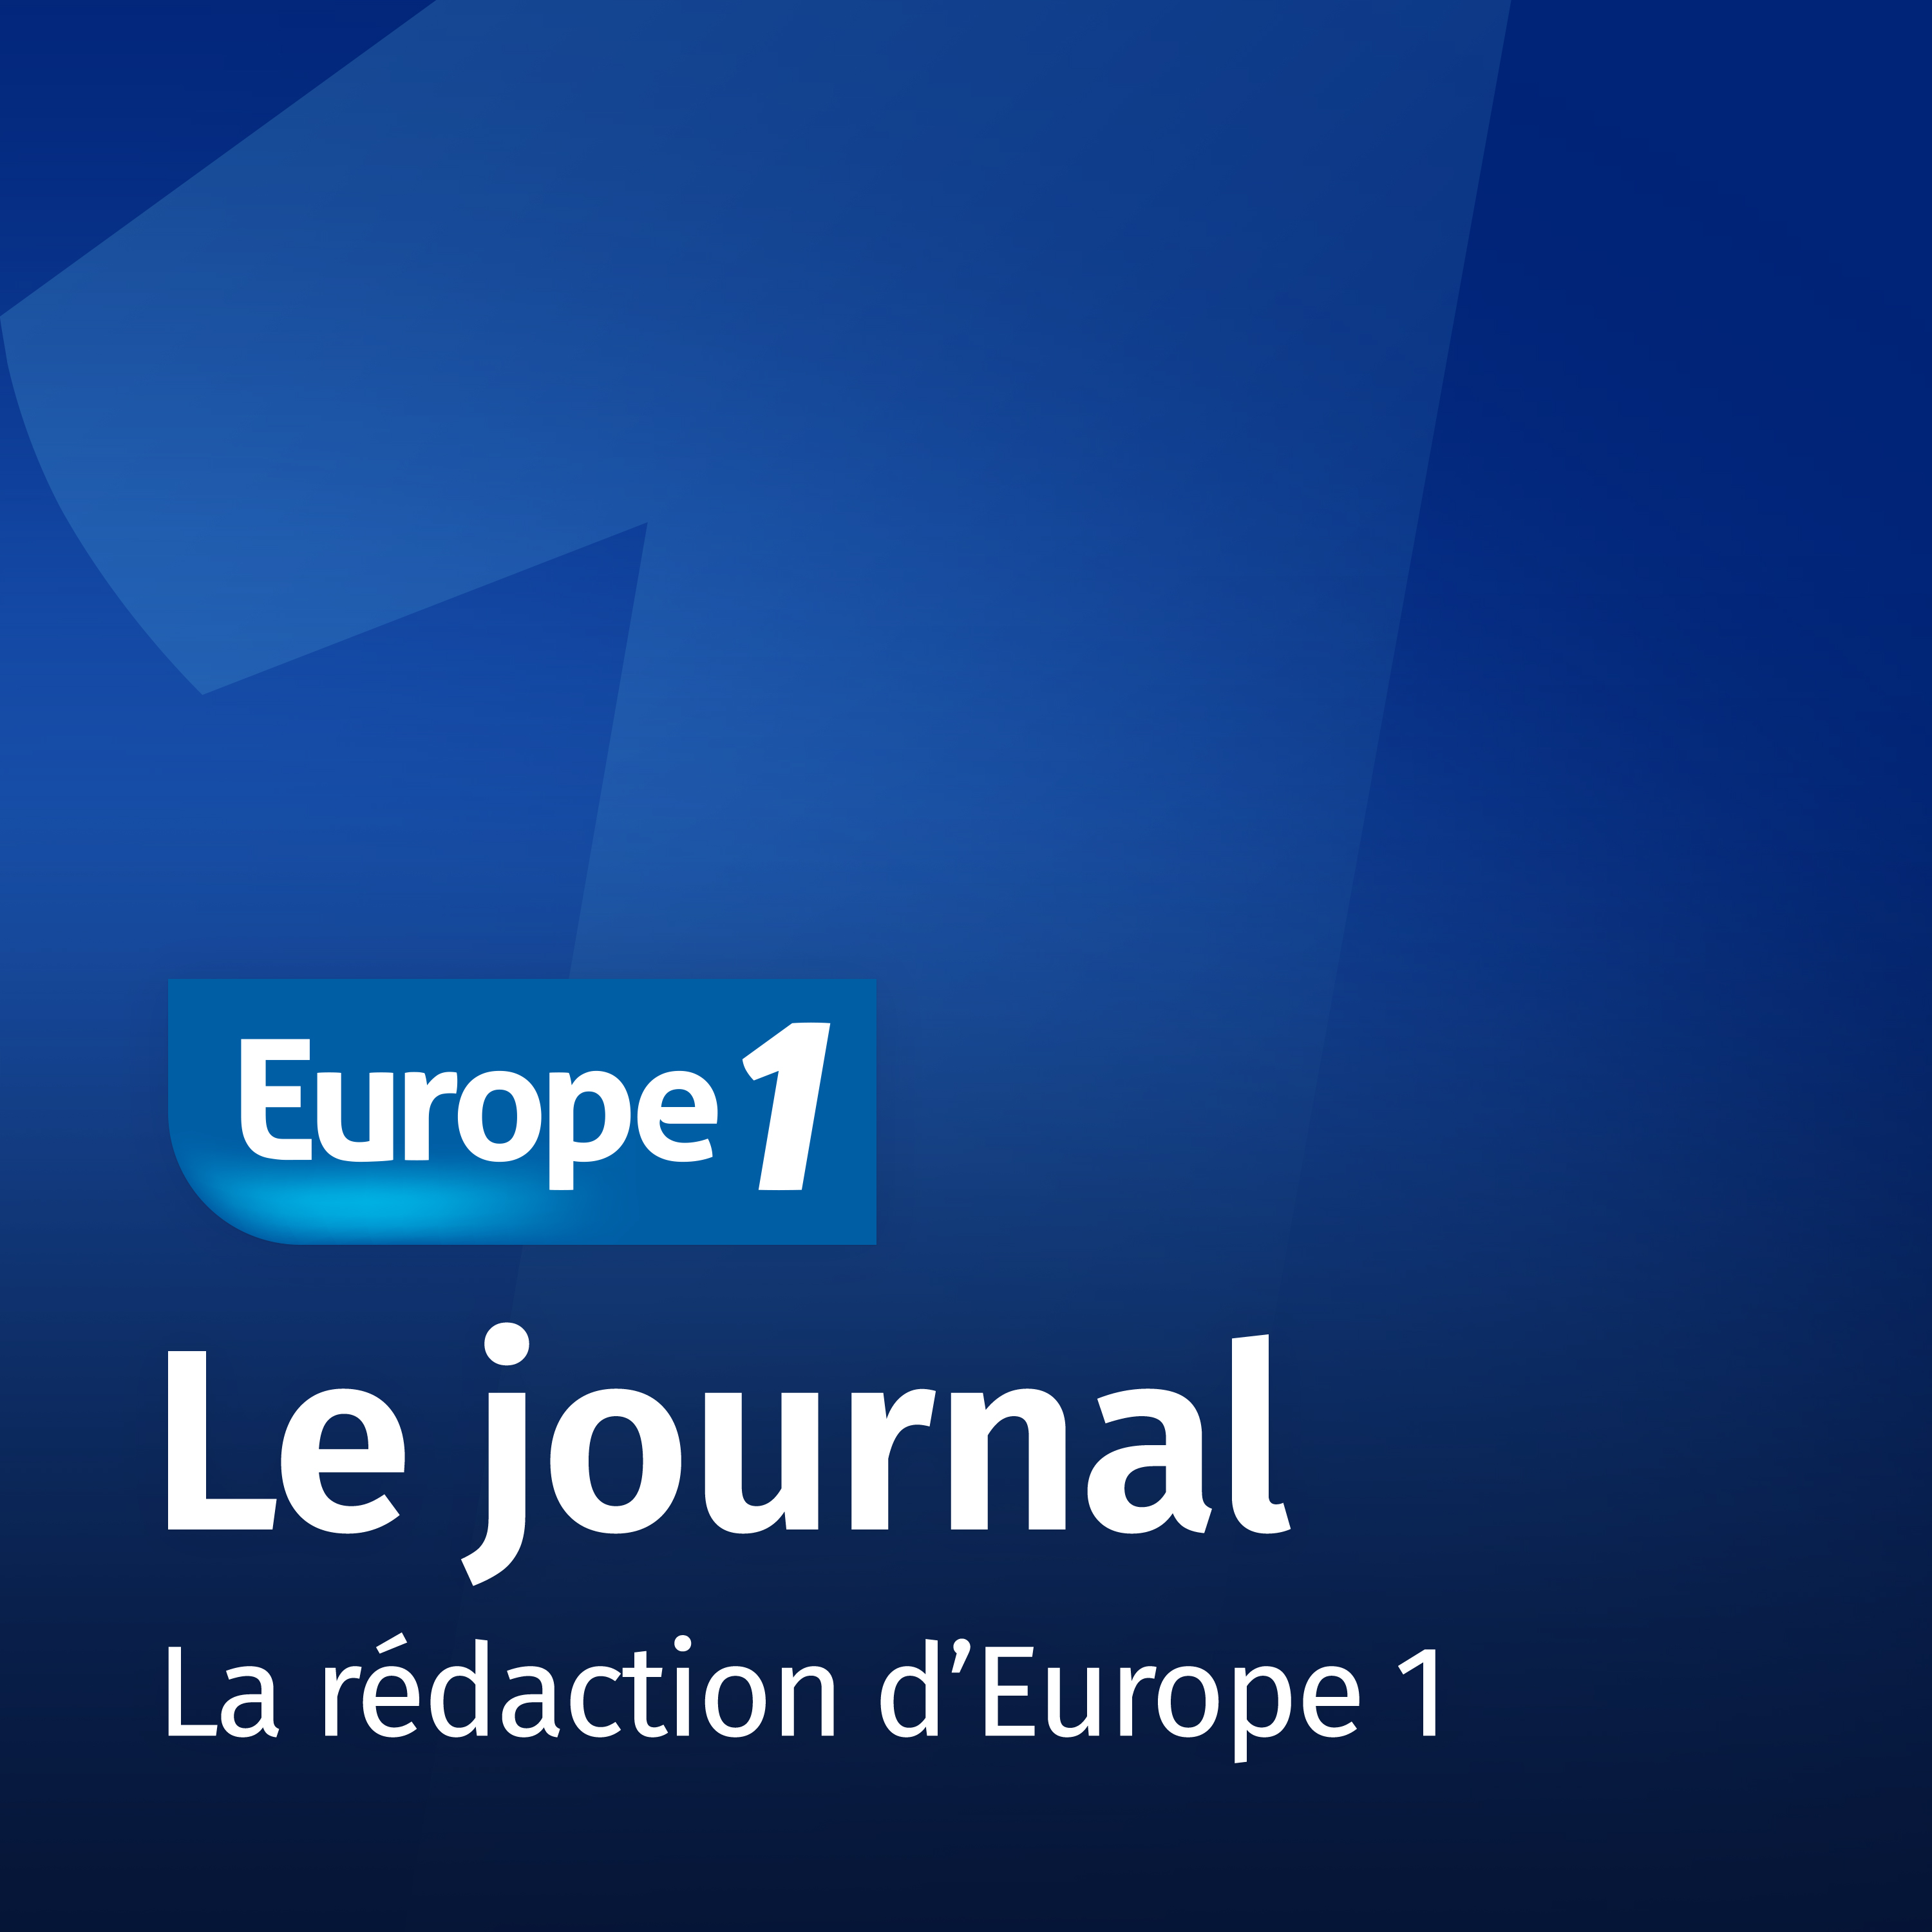 Image 1: Le journal Europe 1